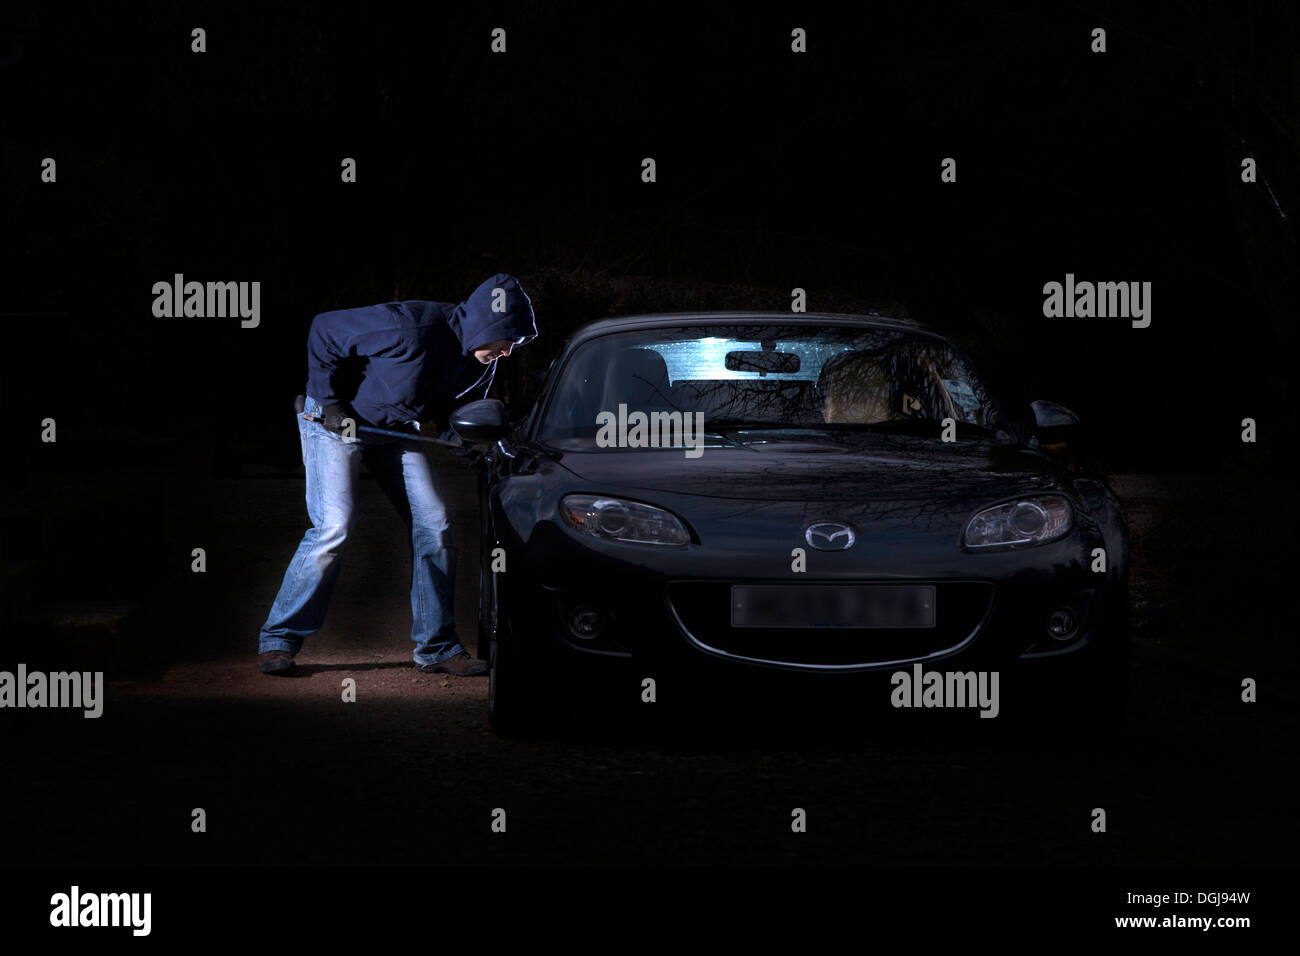 A man breaking into a parked car at night. - Stock Image